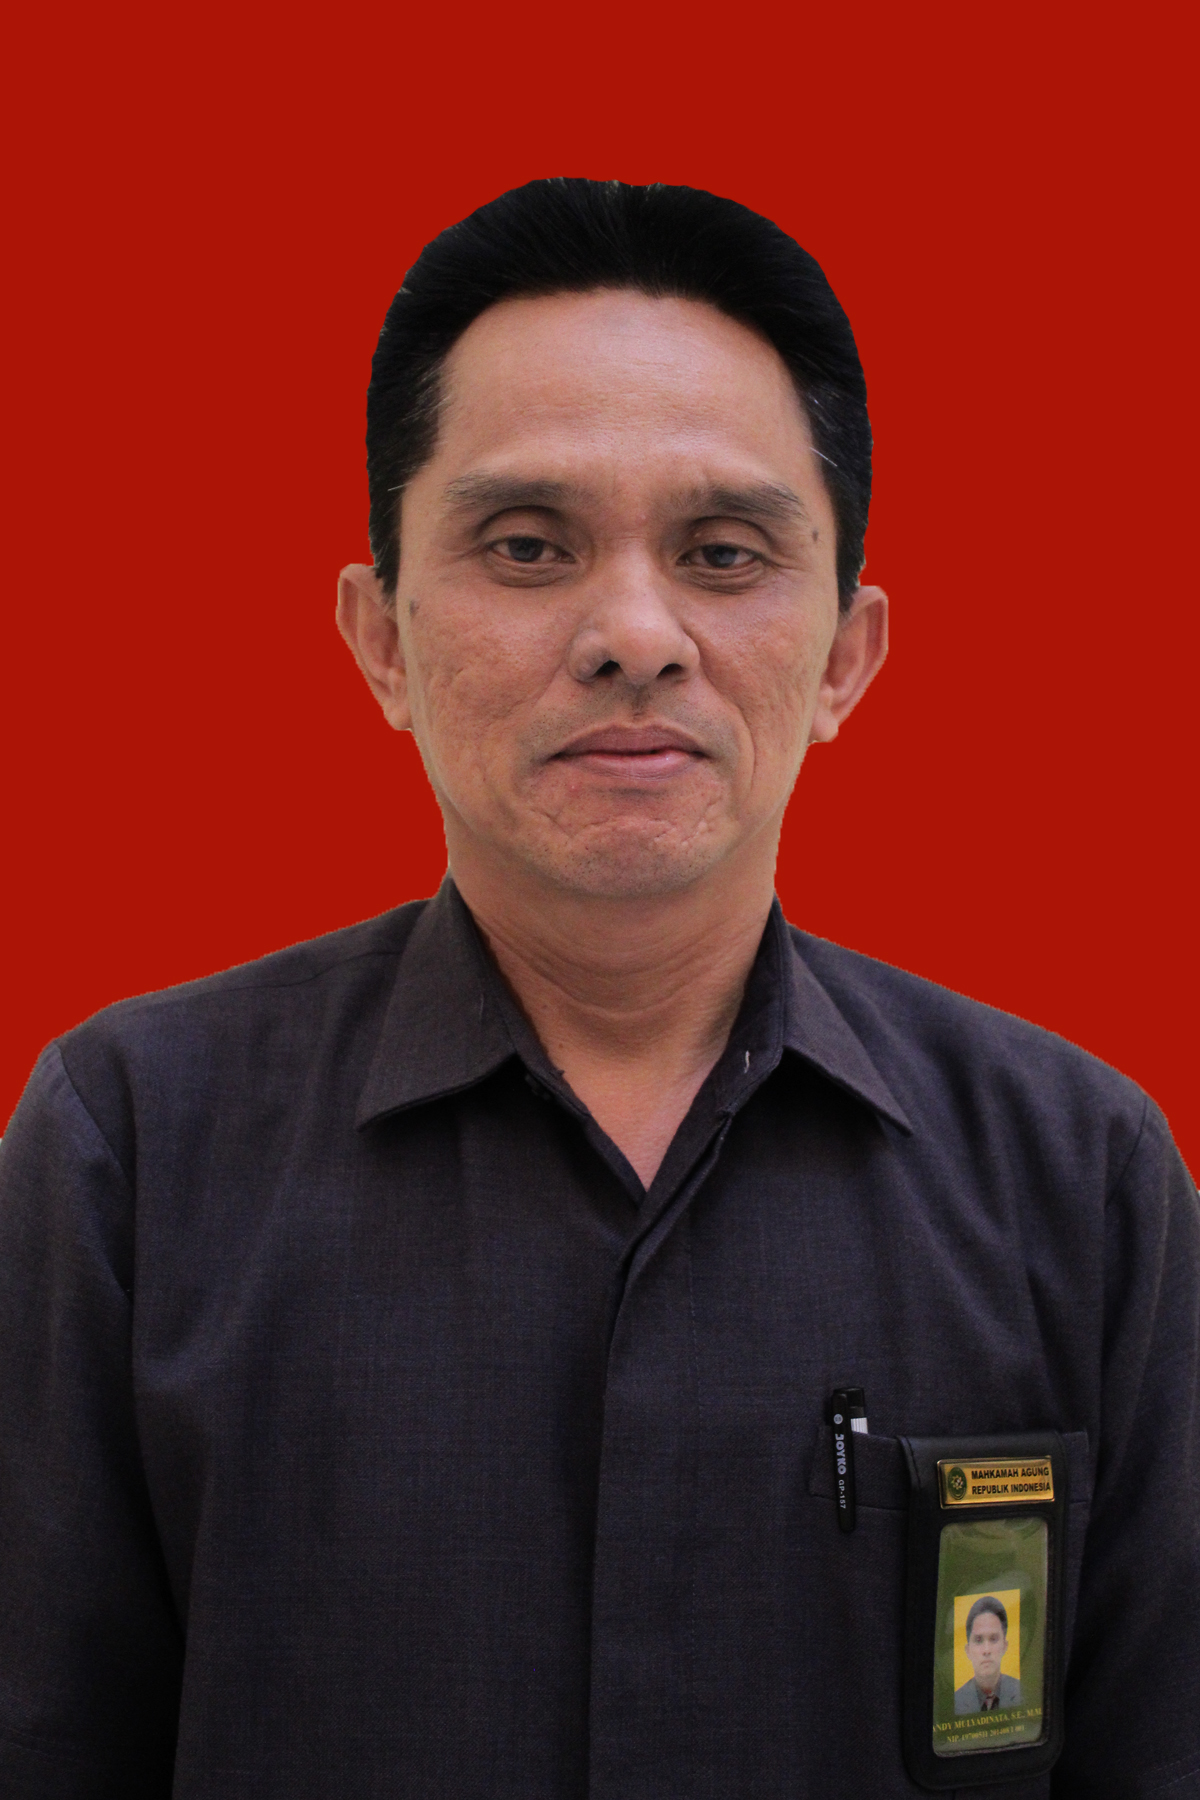 Andy Mulyadinata